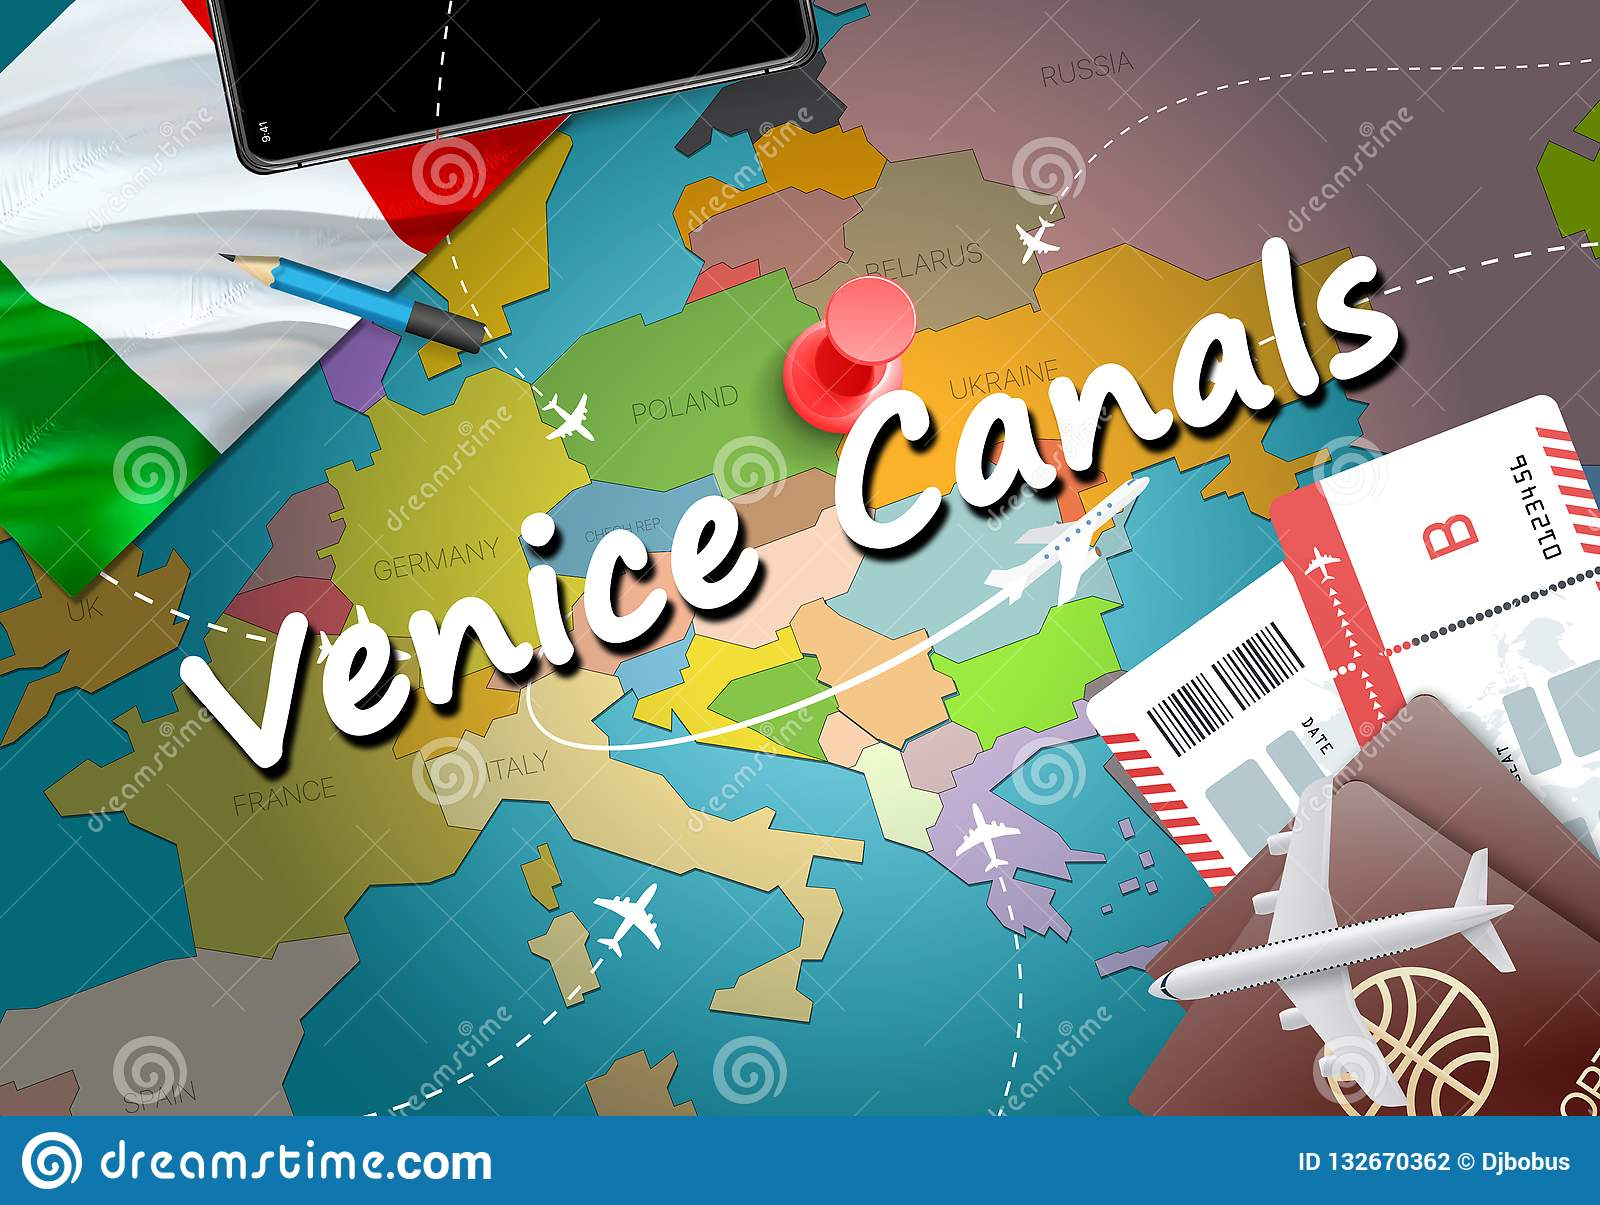 Venice Cs City Travel And Tourism Destination Concept ... on city of beijing china map, city of geneva switzerland map, city of buenos aires argentina map, city of havana cuba map, venezia italy map, city of izmir turkey map, city of venice florida map, city of marseille france map, city of budapest hungary map, city of doha qatar map, city of manila philippines map, city of bangkok thailand map, city of dubrovnik croatia map, city of nassau bahamas map, city of kiev ukraine map, city of germany map, city of edmonton canada map, city of reykjavik iceland map, city of zurich switzerland map, city of spain map,